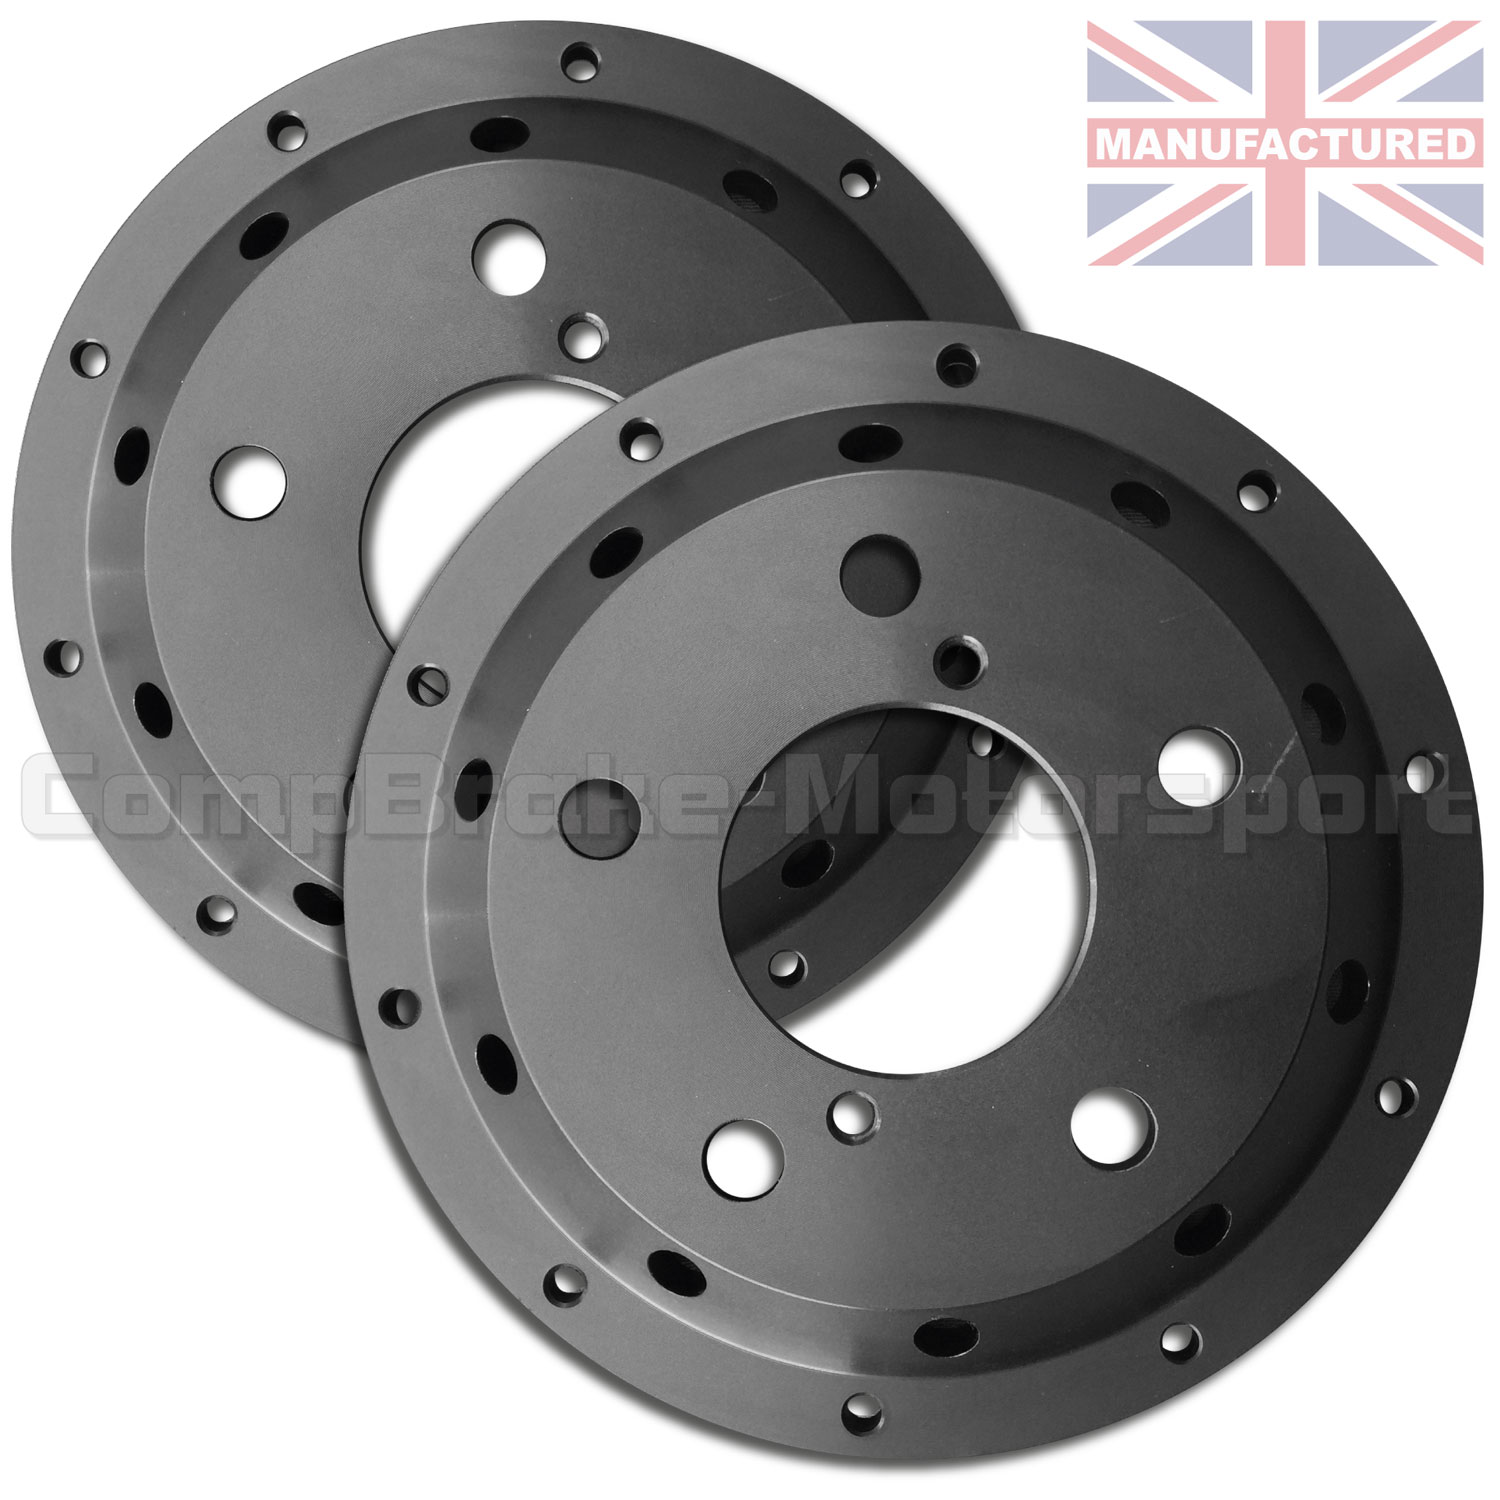 Subaru Tarox 326 X 26mm 2 Piece Brake Disc Conversion Kit